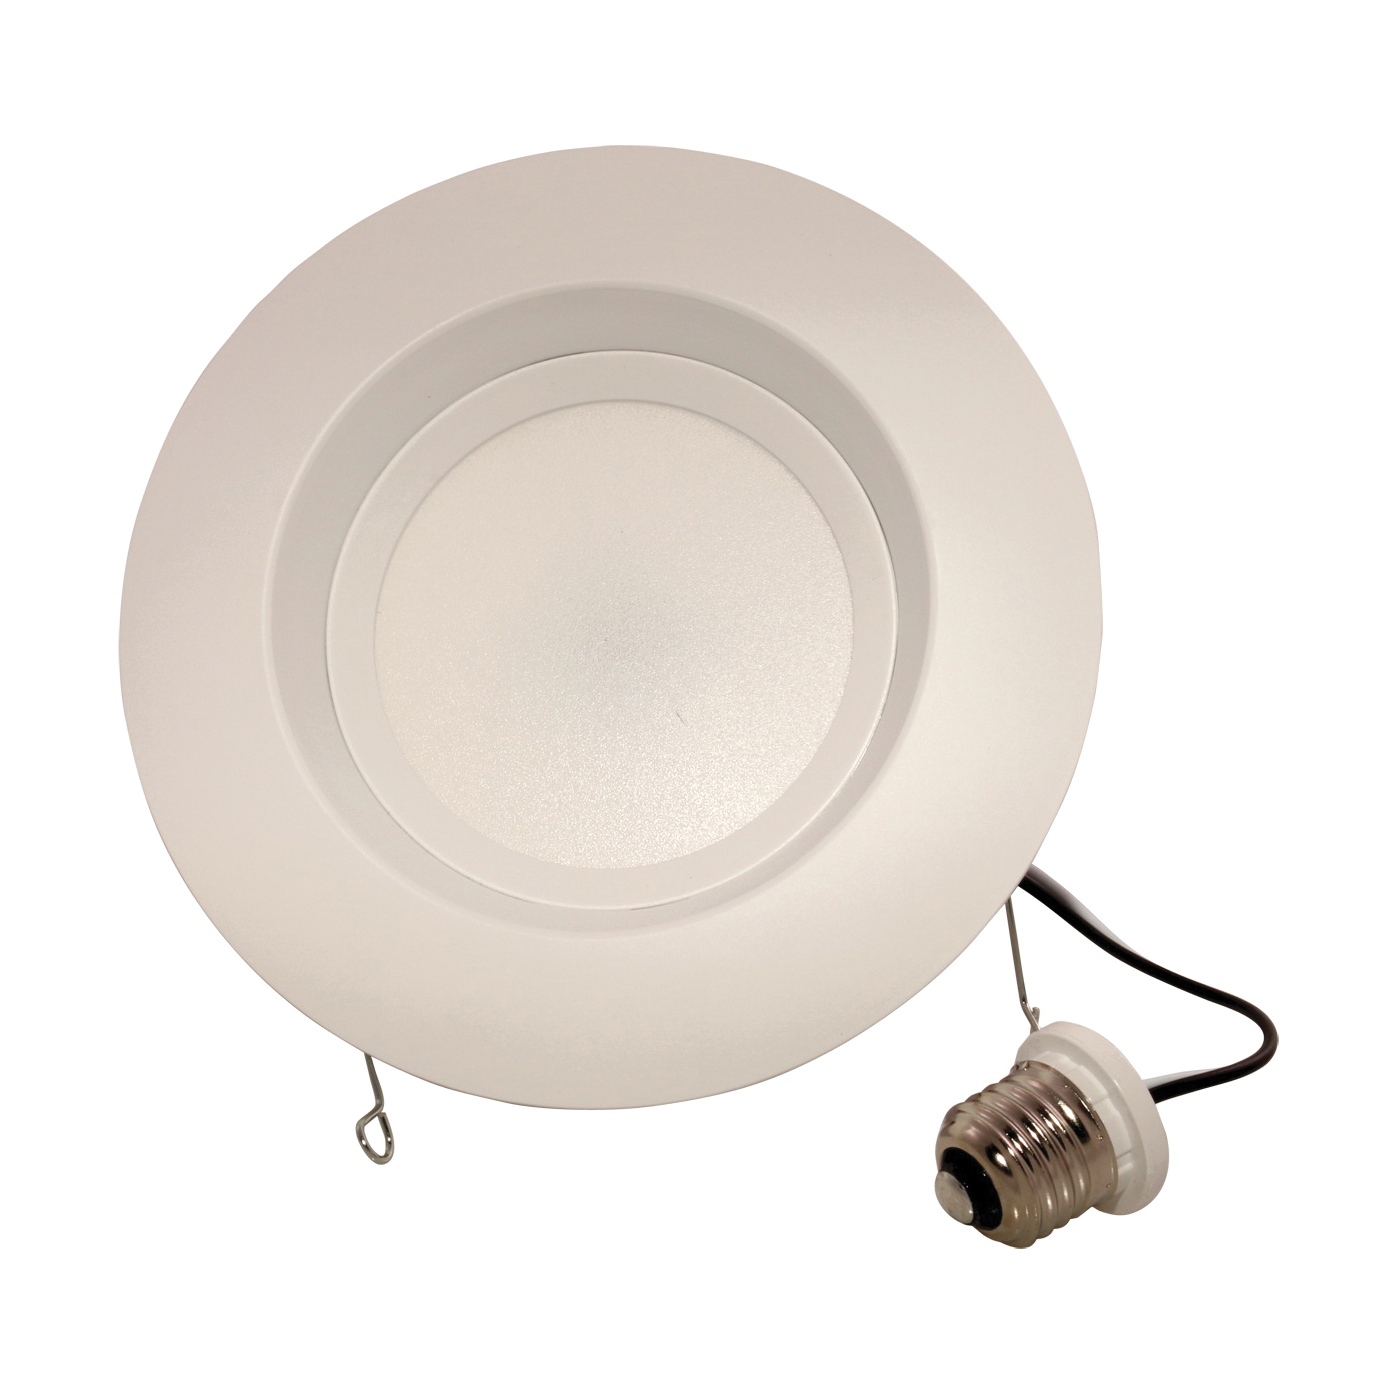 Picture of Sylvania 74297 Downlight Kit, Dimmable, Case